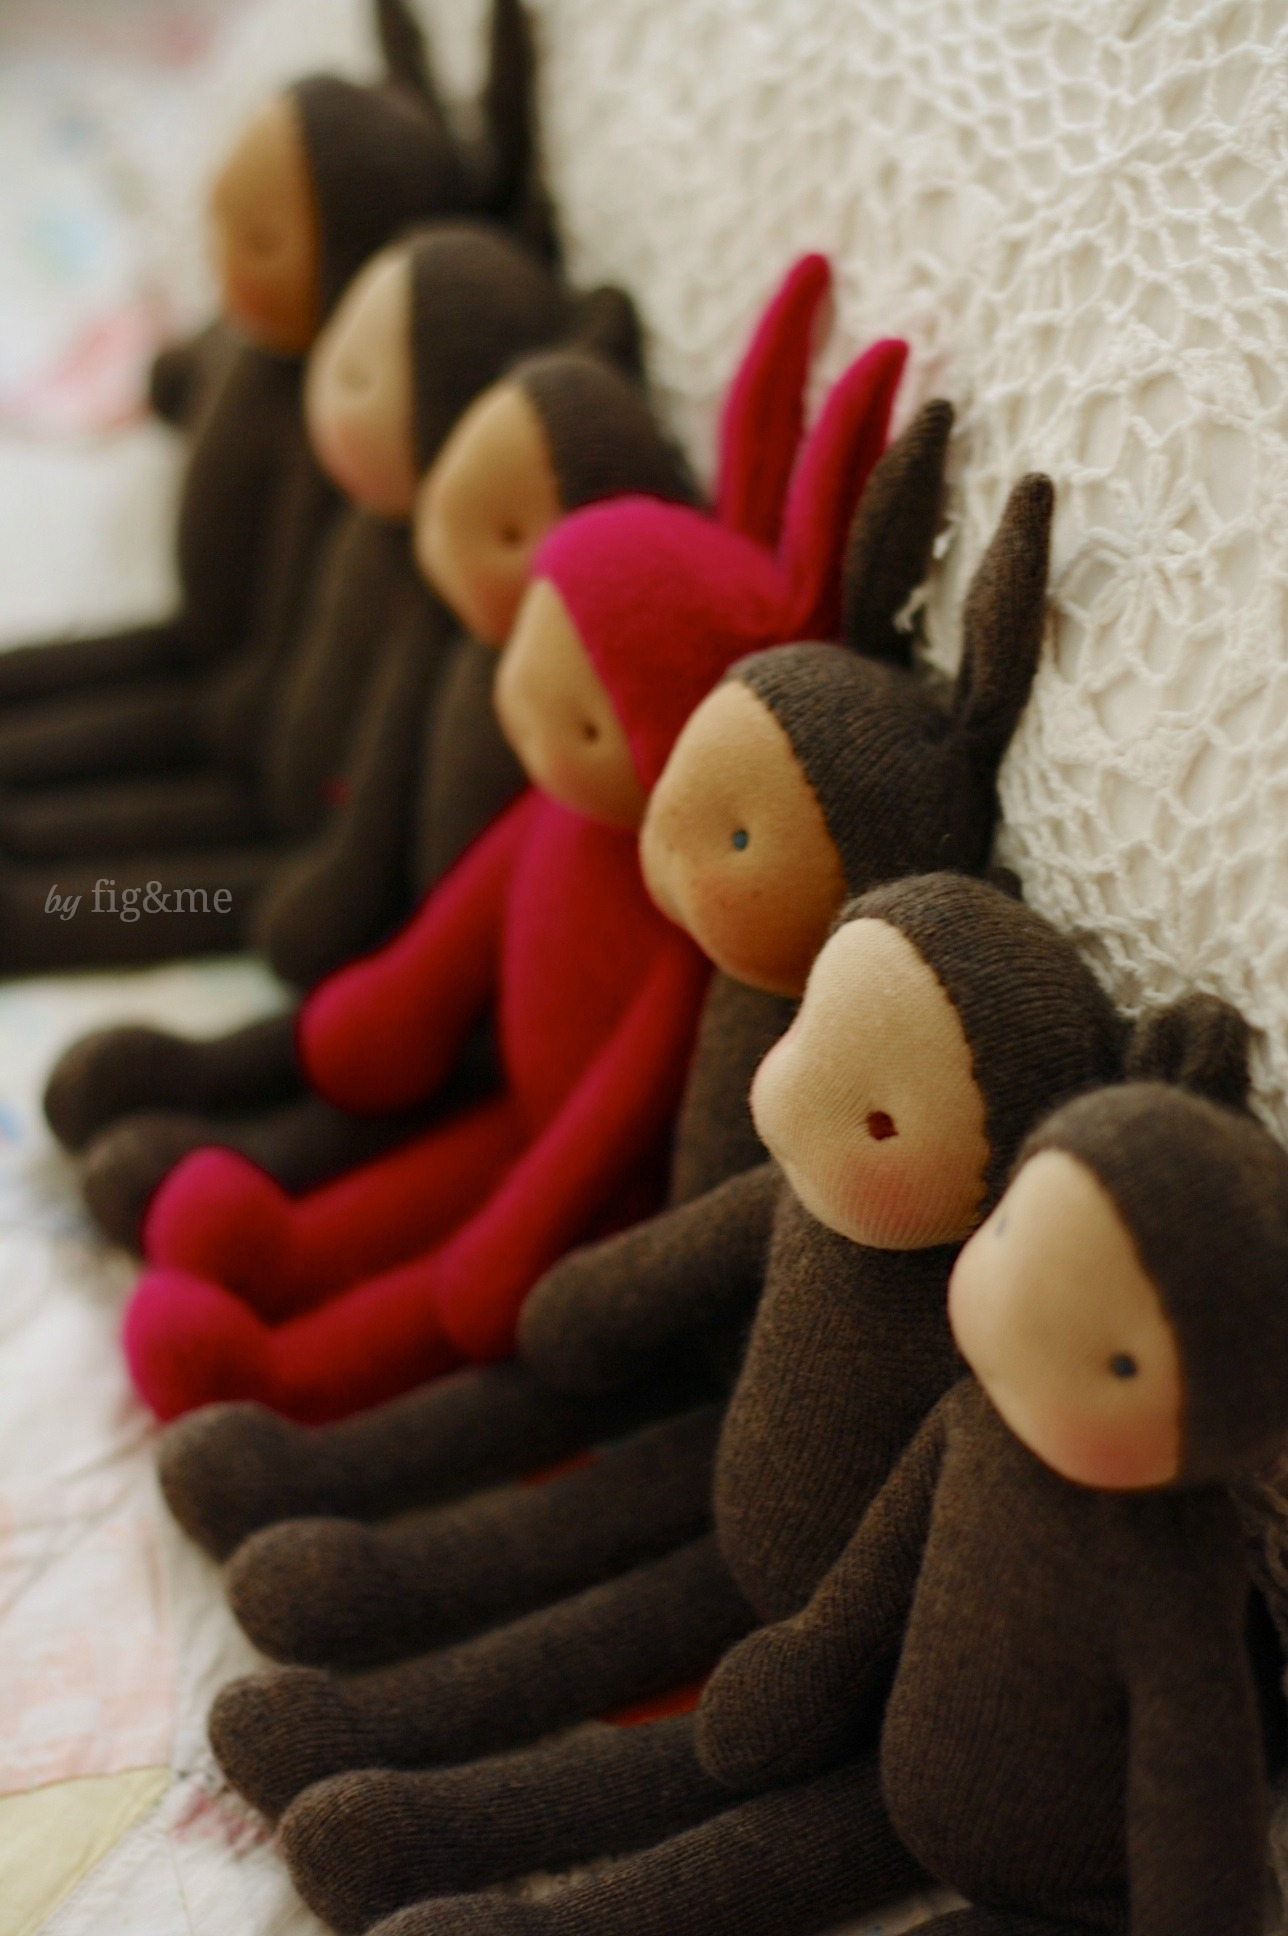 Handmade wool and cashmere babies, by Fig and me.